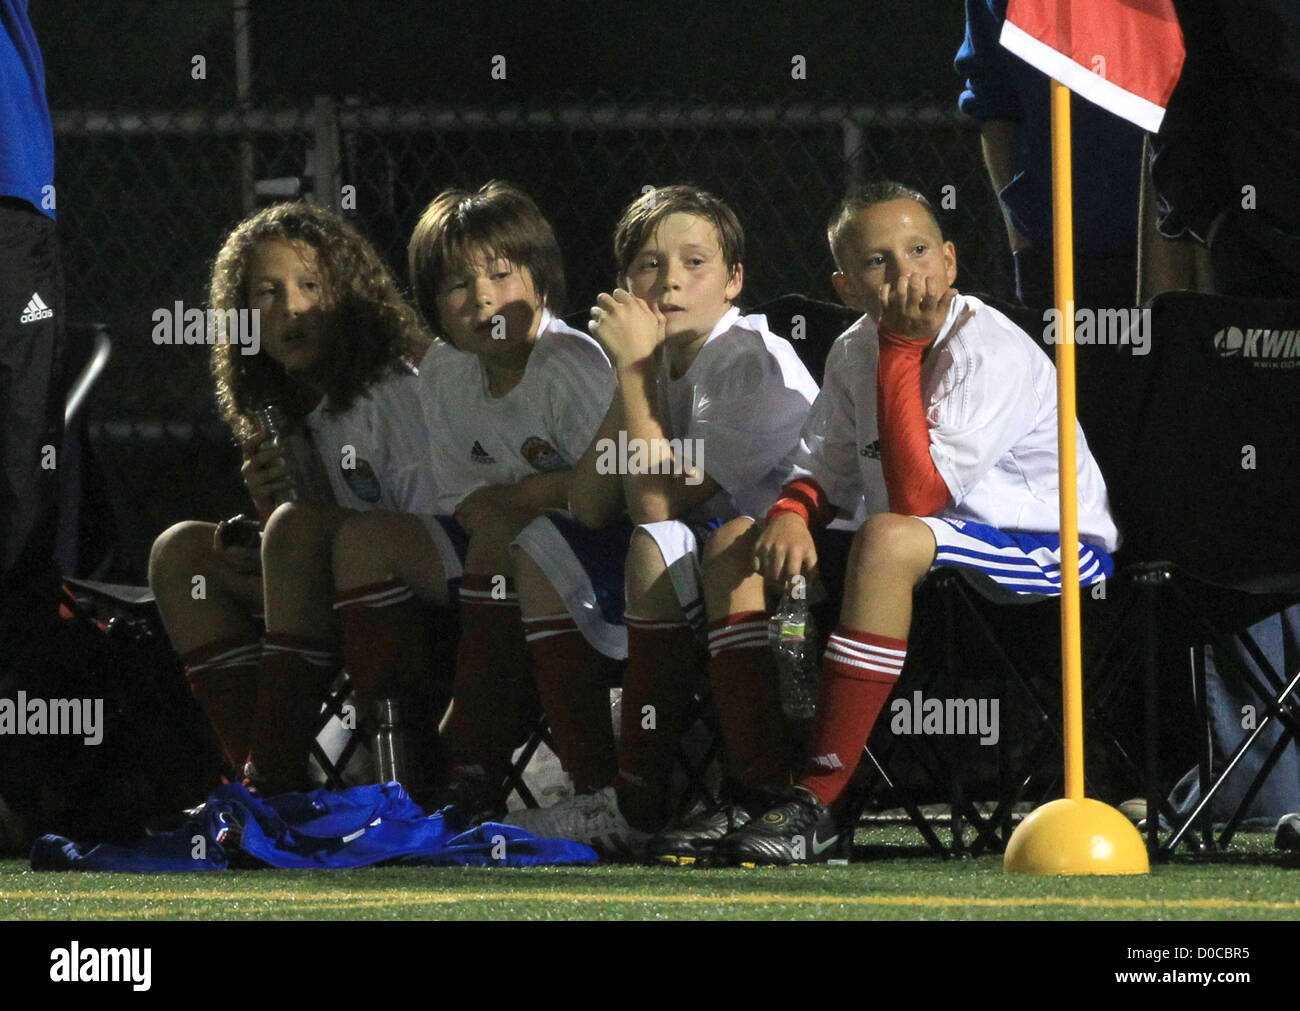 Brooklyn Beckham sits on the sidelines during his football match Los Angeles, California - 09.10.10 - Stock Image